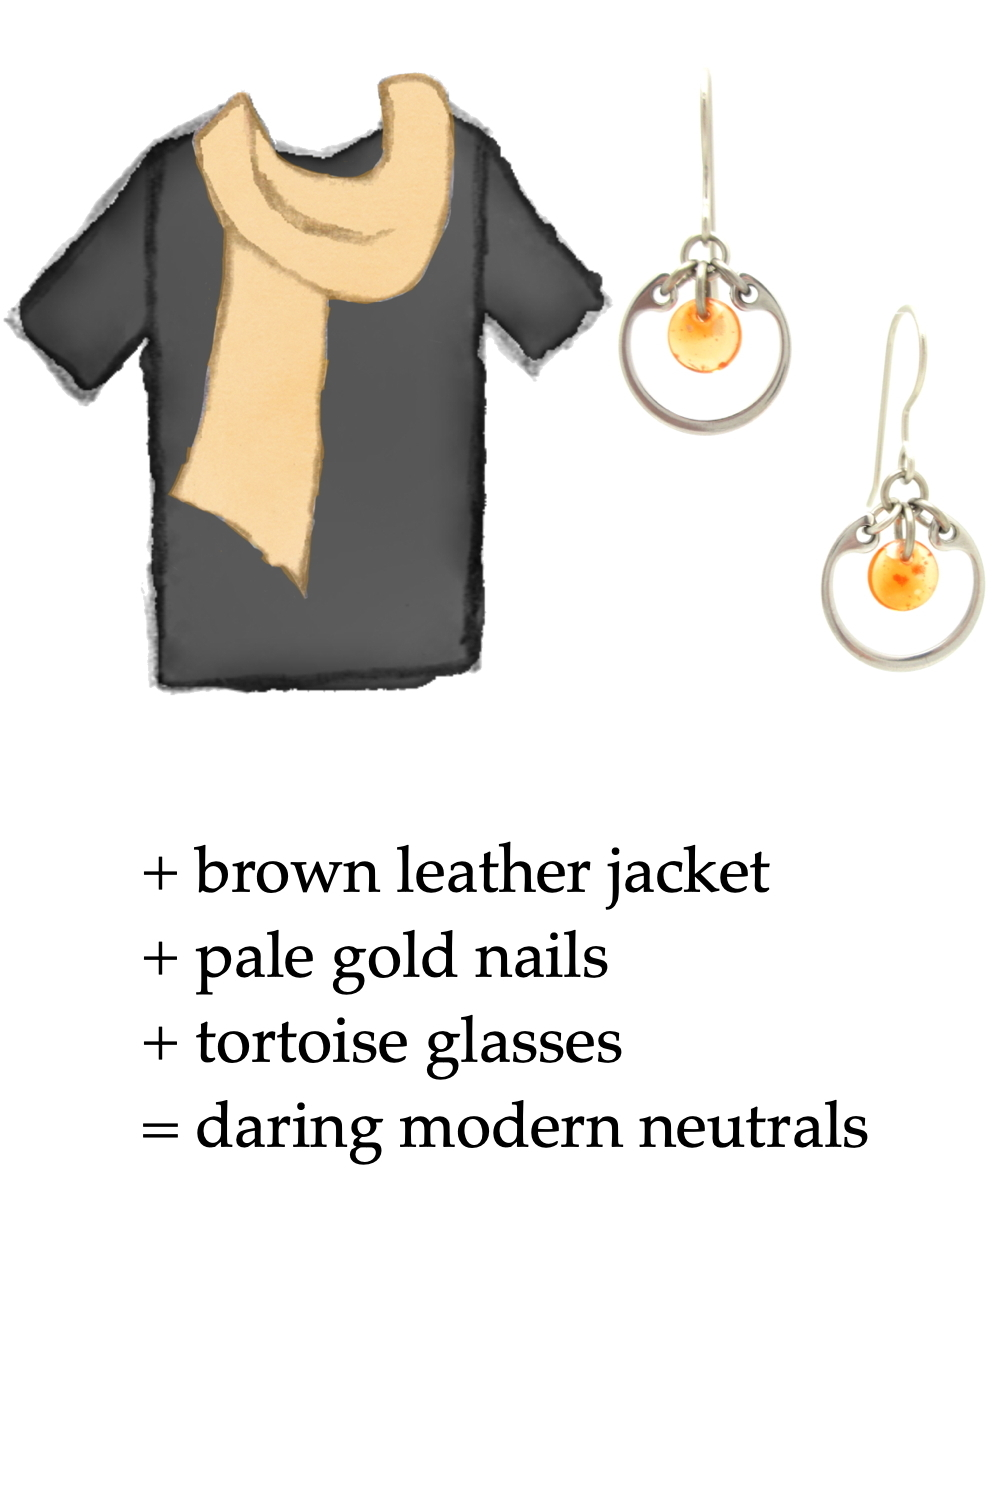 sketch of a black t-shirt with pale gold scarf and small modern orange earrings; text on image reads: + brown leather jacket + pale gold nails + tortoise glasses = daring modern neutrals